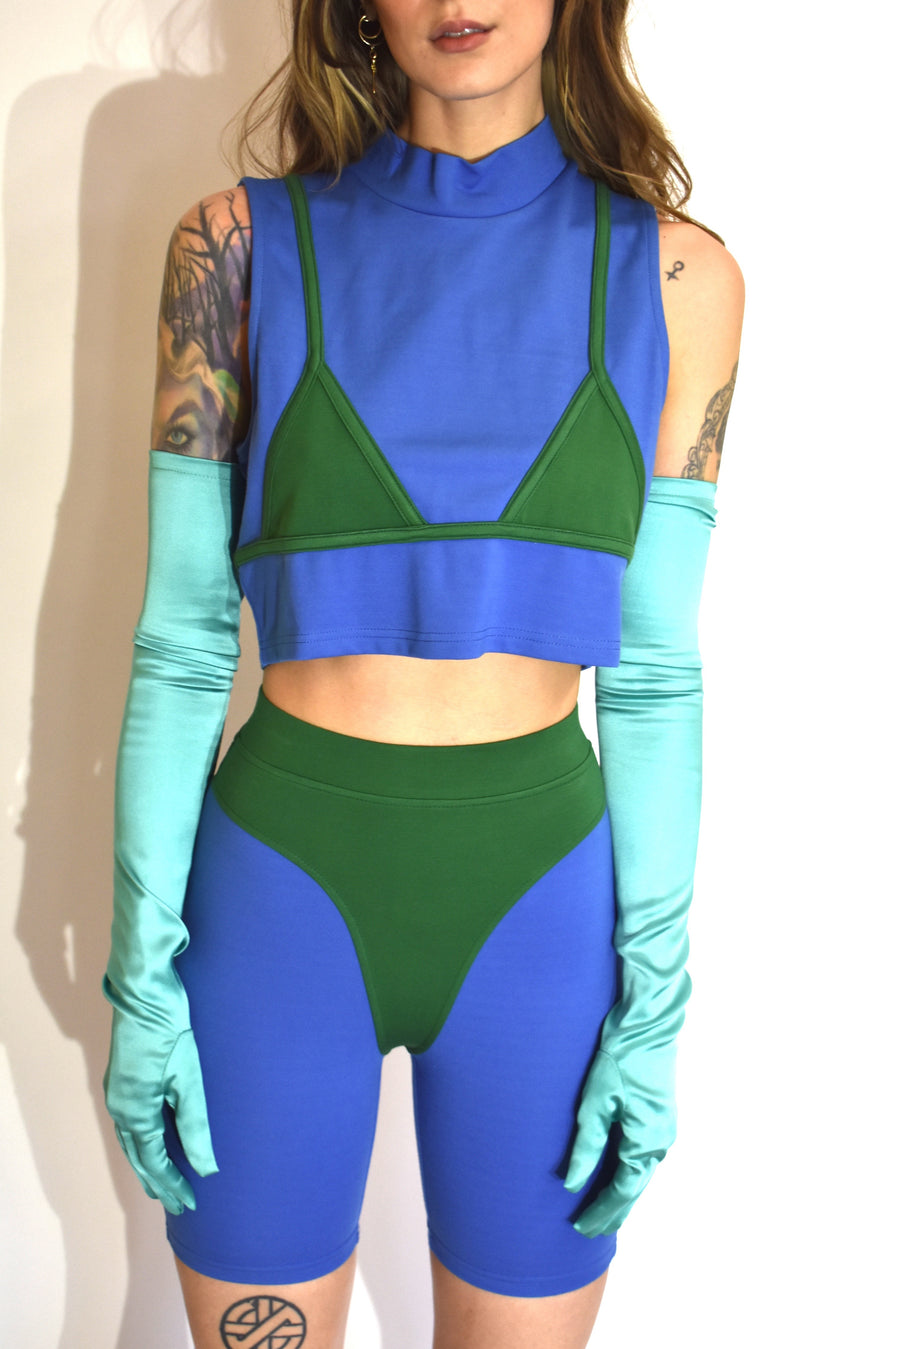 Bikini Crop Top Blue/Green